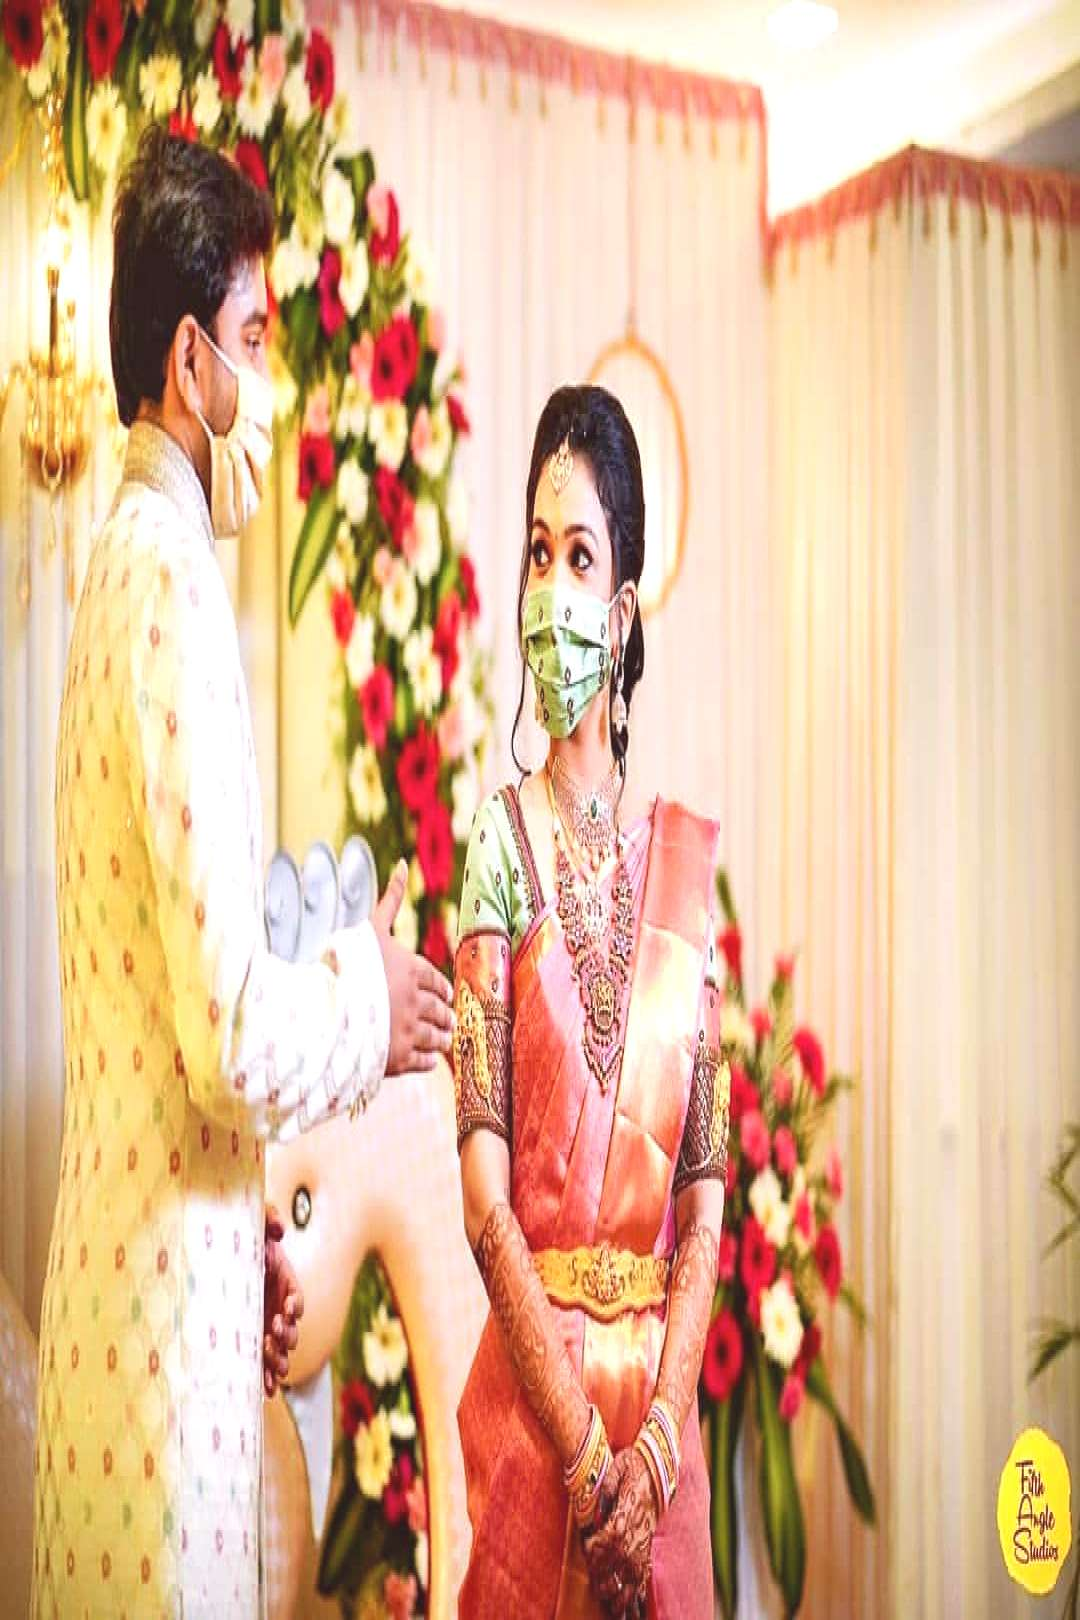 The Bridal Channel on June 11 2020 1 person standing wedding and